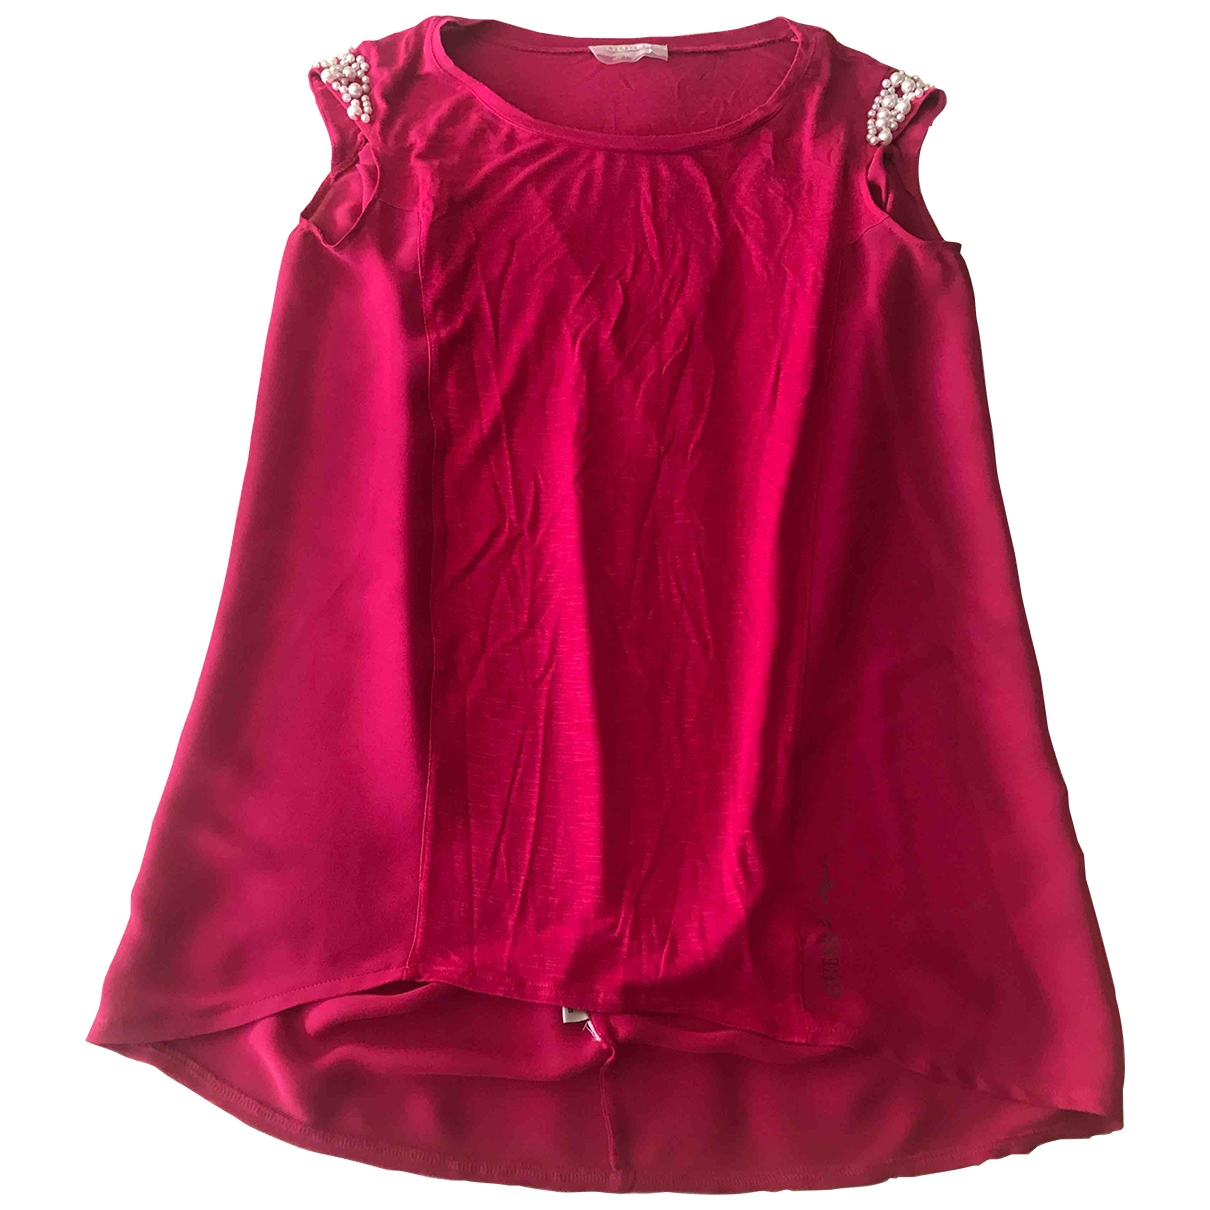 Guess \N Pink  top for Women S International